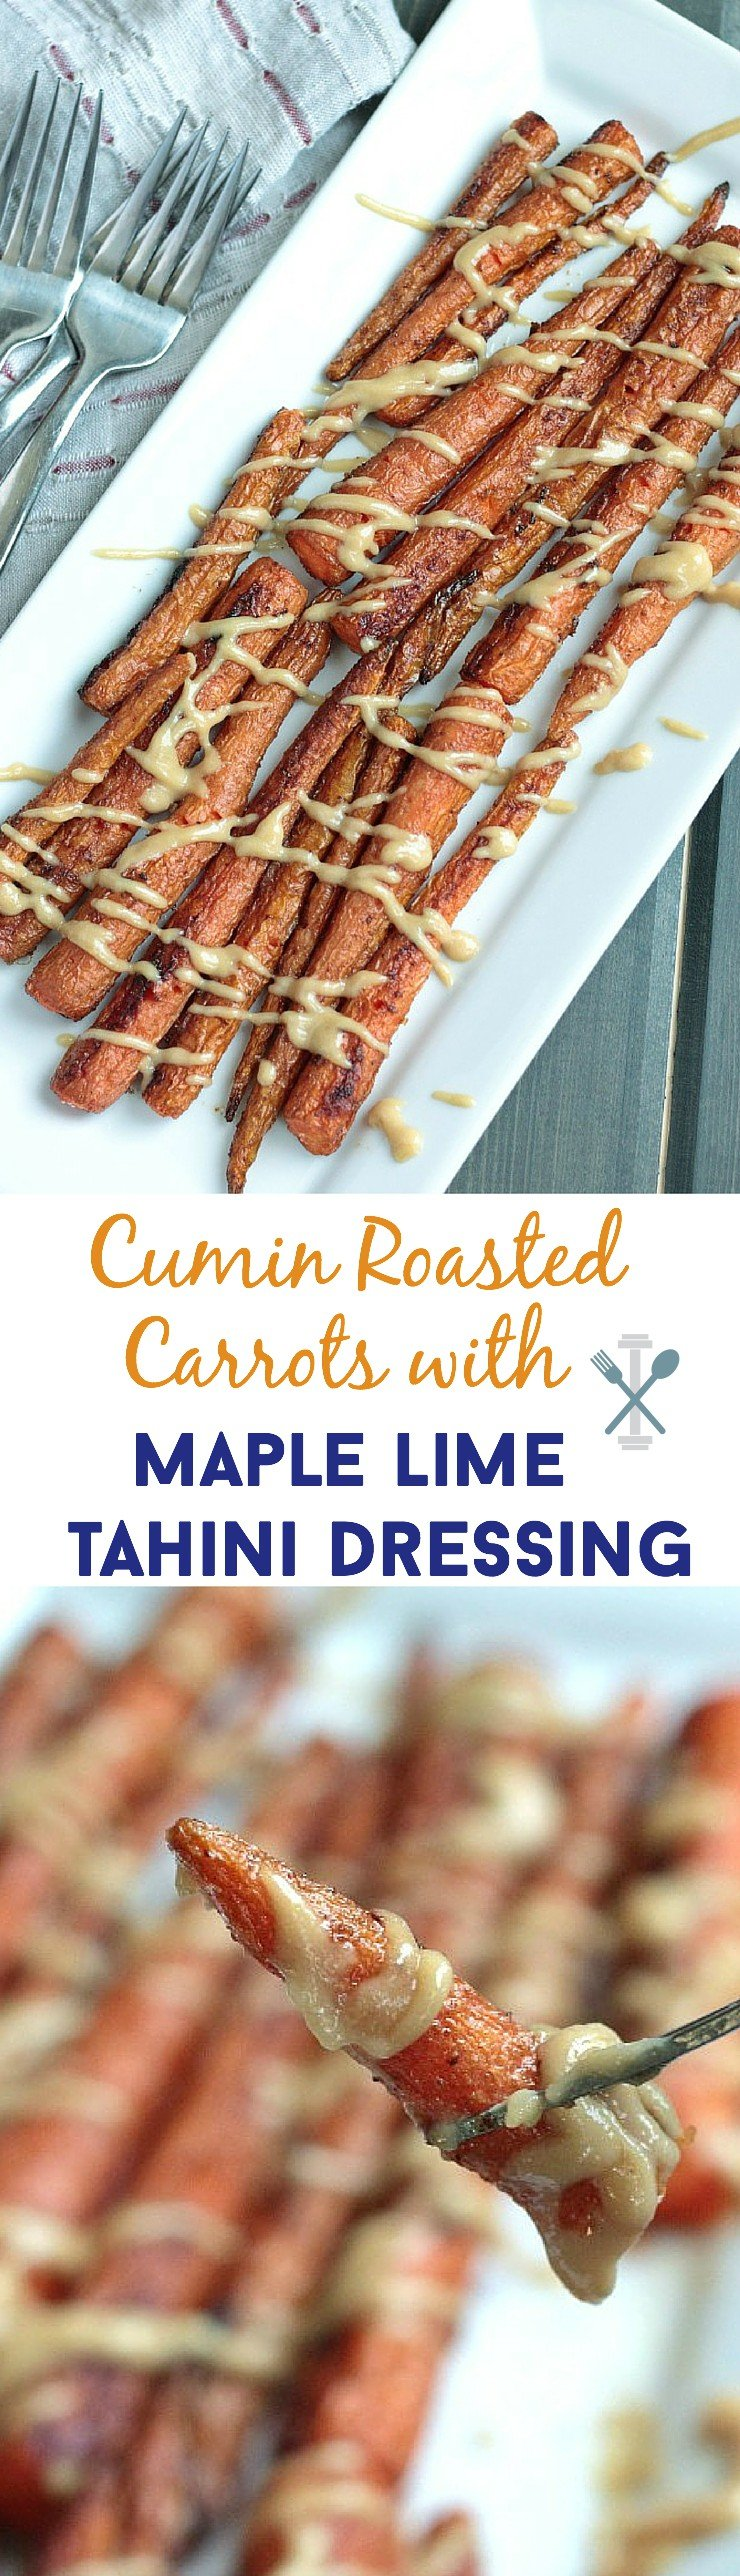 This paleo side dish is perfect to compliment any protein for dinner! So easy, this tasty cumin roasted carrot side dish with a flavor-packed maple lime tahini dressing is a WINNER!